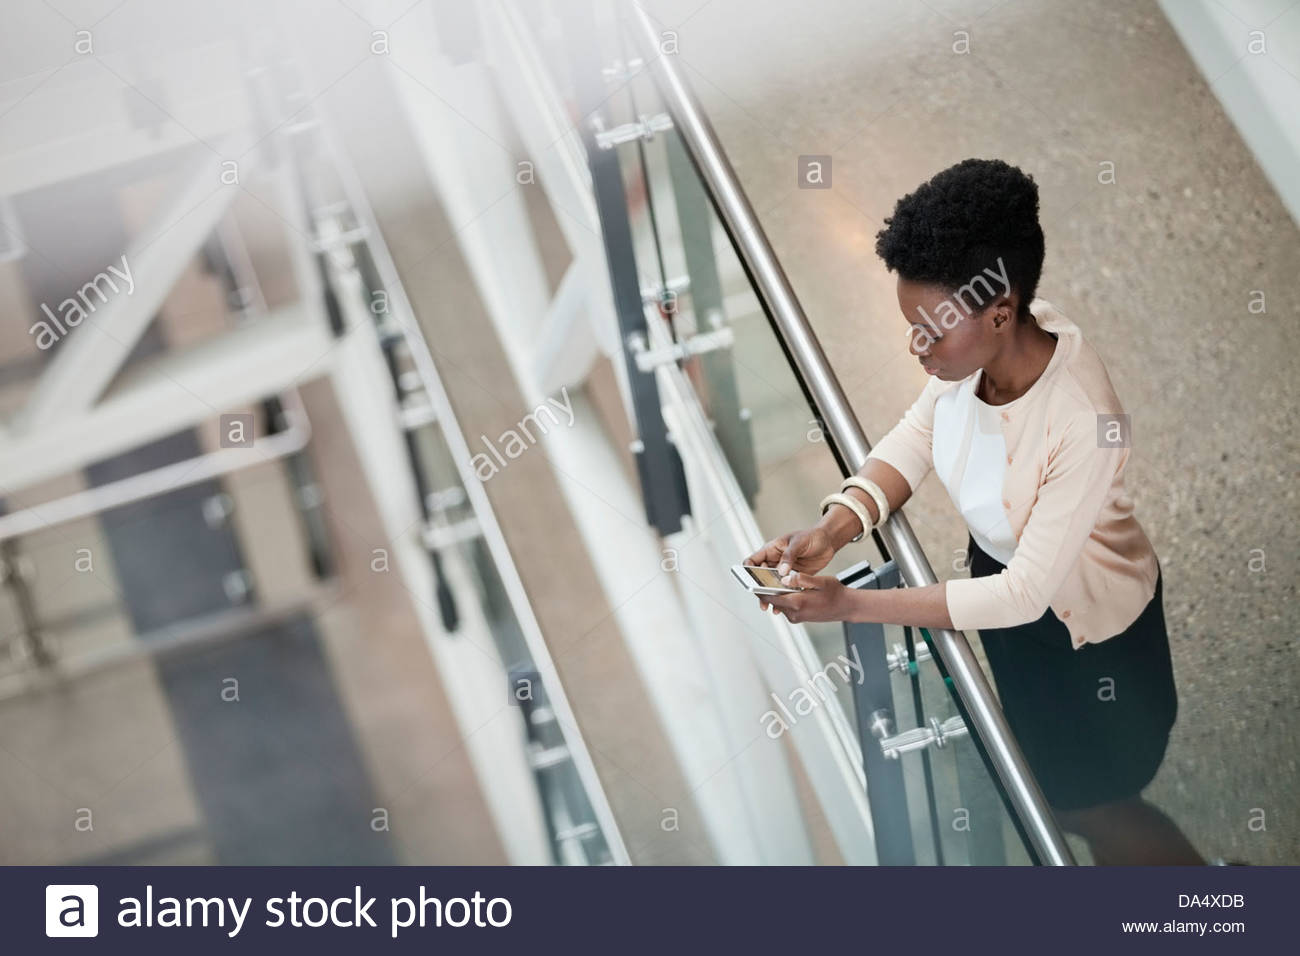 High angle view of woman using mobile phone in office building - Stock Image